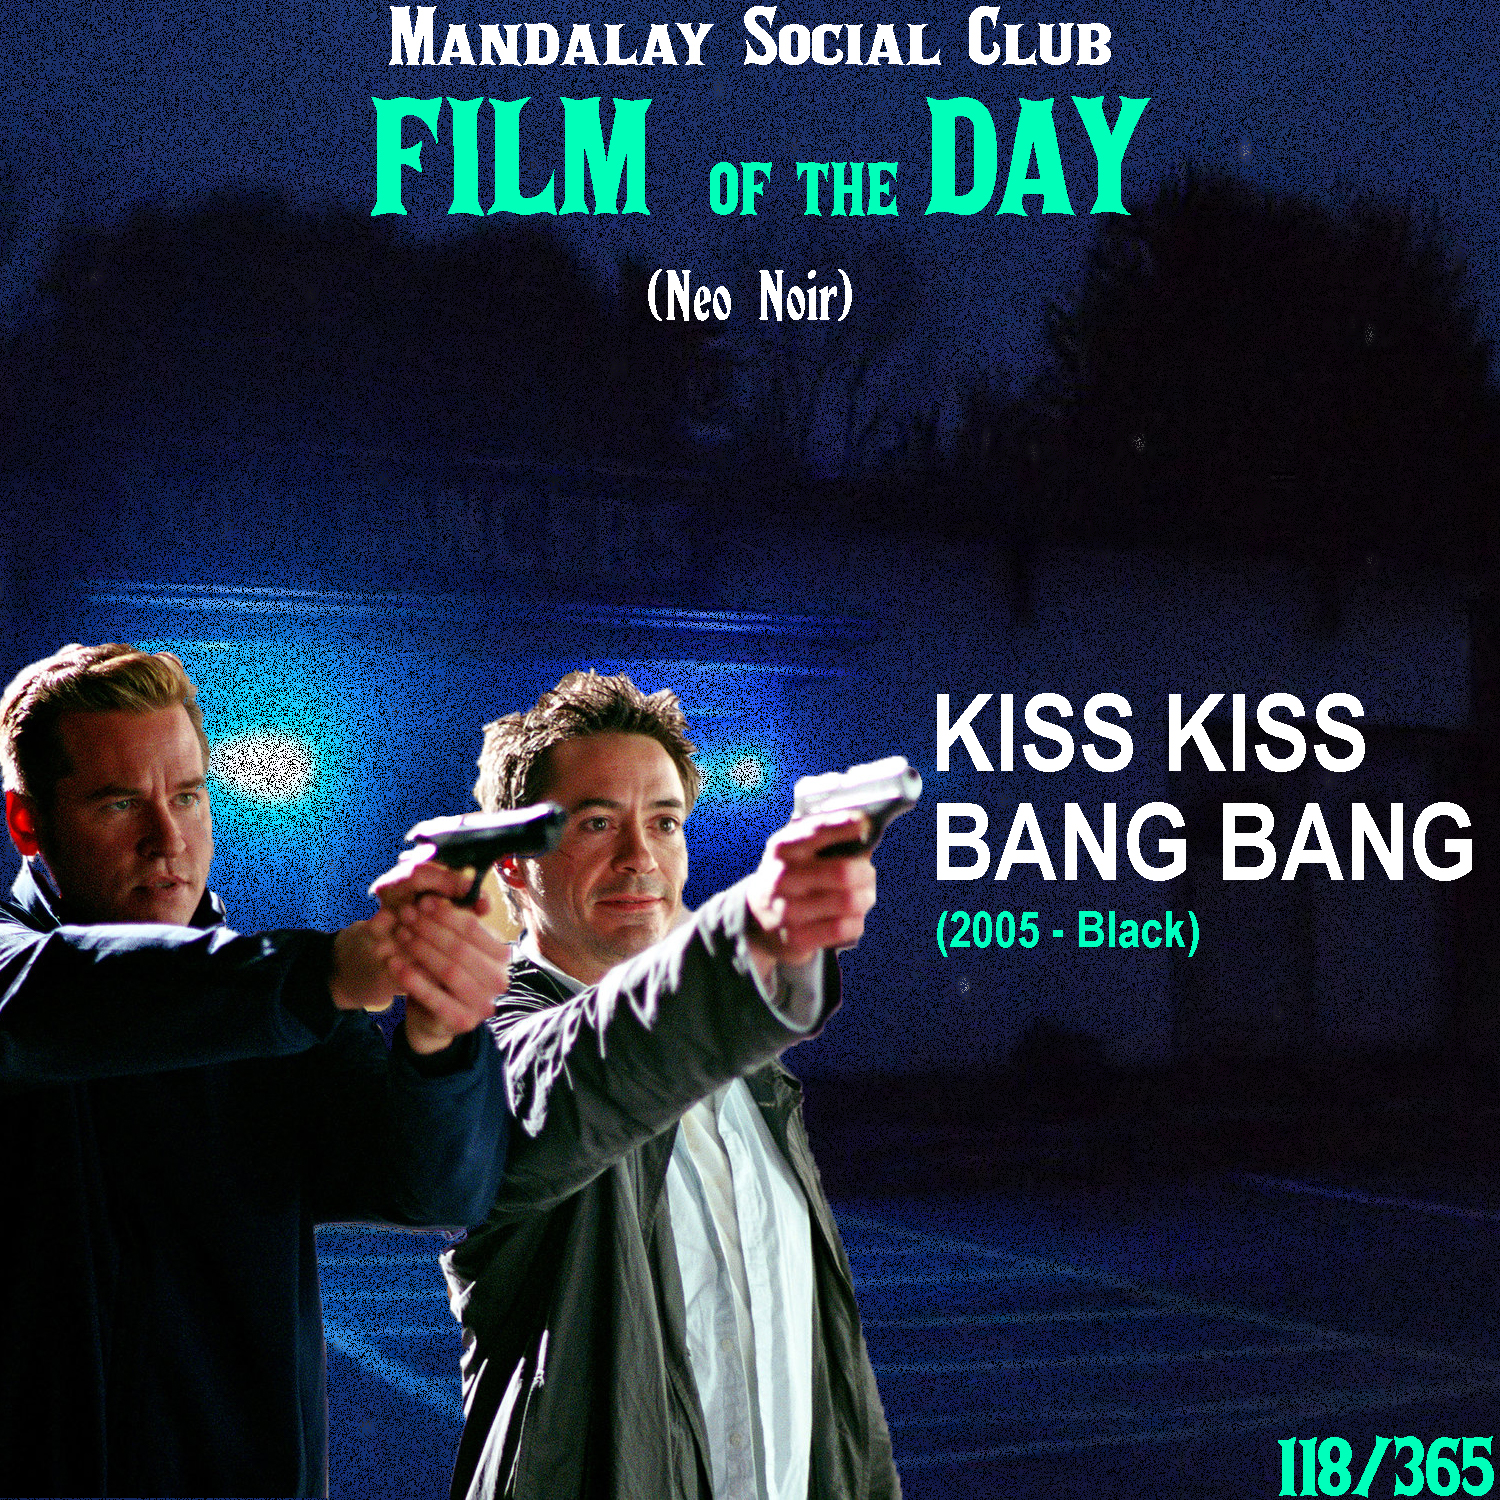 KISS KISS BANG BANG     (dir. Shane Black)   Shane Black's directorial debut came with the more comedicly-toned Neo-noir  Kiss Kiss Bang Bang .  The film stars Robert Downey Jr. as Harry, a thief in New York City who unknowingly stumbles into a movie audition when running from the police. He just so happens to get the part that sends him down to LA where he runs into a childhood friend. While following a detective played by Val Kilmer in order to prep for a role, Harry gets involved in a very real murder plot.   Kiss Kiss Bang Bang  works as a Neo-noir, because it so consciously dismisses, and at times makes fun of, the rudimentary 'noir' tropes. Downey's character is a quick witted smart mouth that narrates the film and constantly finds himself poking fun at himself, the viewer, and any genre expectations. It's pretty obvious that this role helped shoe him into the role of Tony Stark later on.   Kiss Kiss Bang Bang  satirical approach to the genre makes for one of the most interesting Neo noirs of the 00s!    4/5     WATCH: Putlocker, iTunes